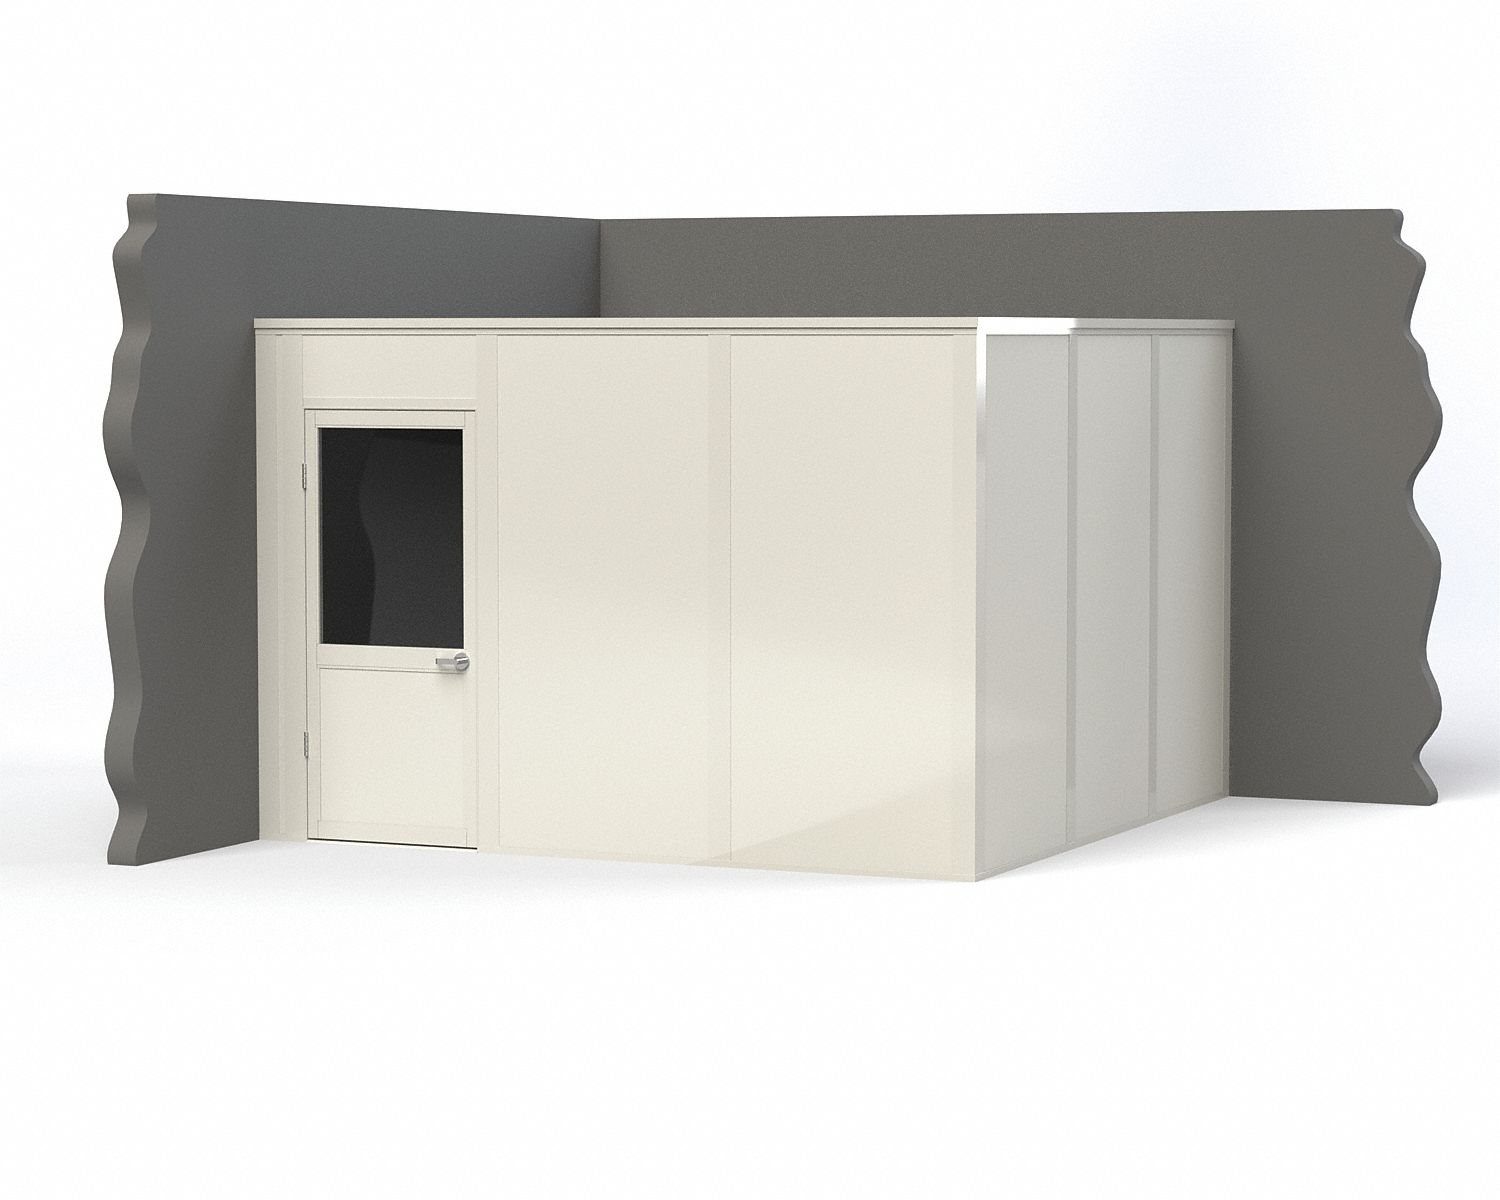 Modular In-Plant Office,  2-Wall,  12 ft. Width,  12 ft. Depth,  8 ft. Height